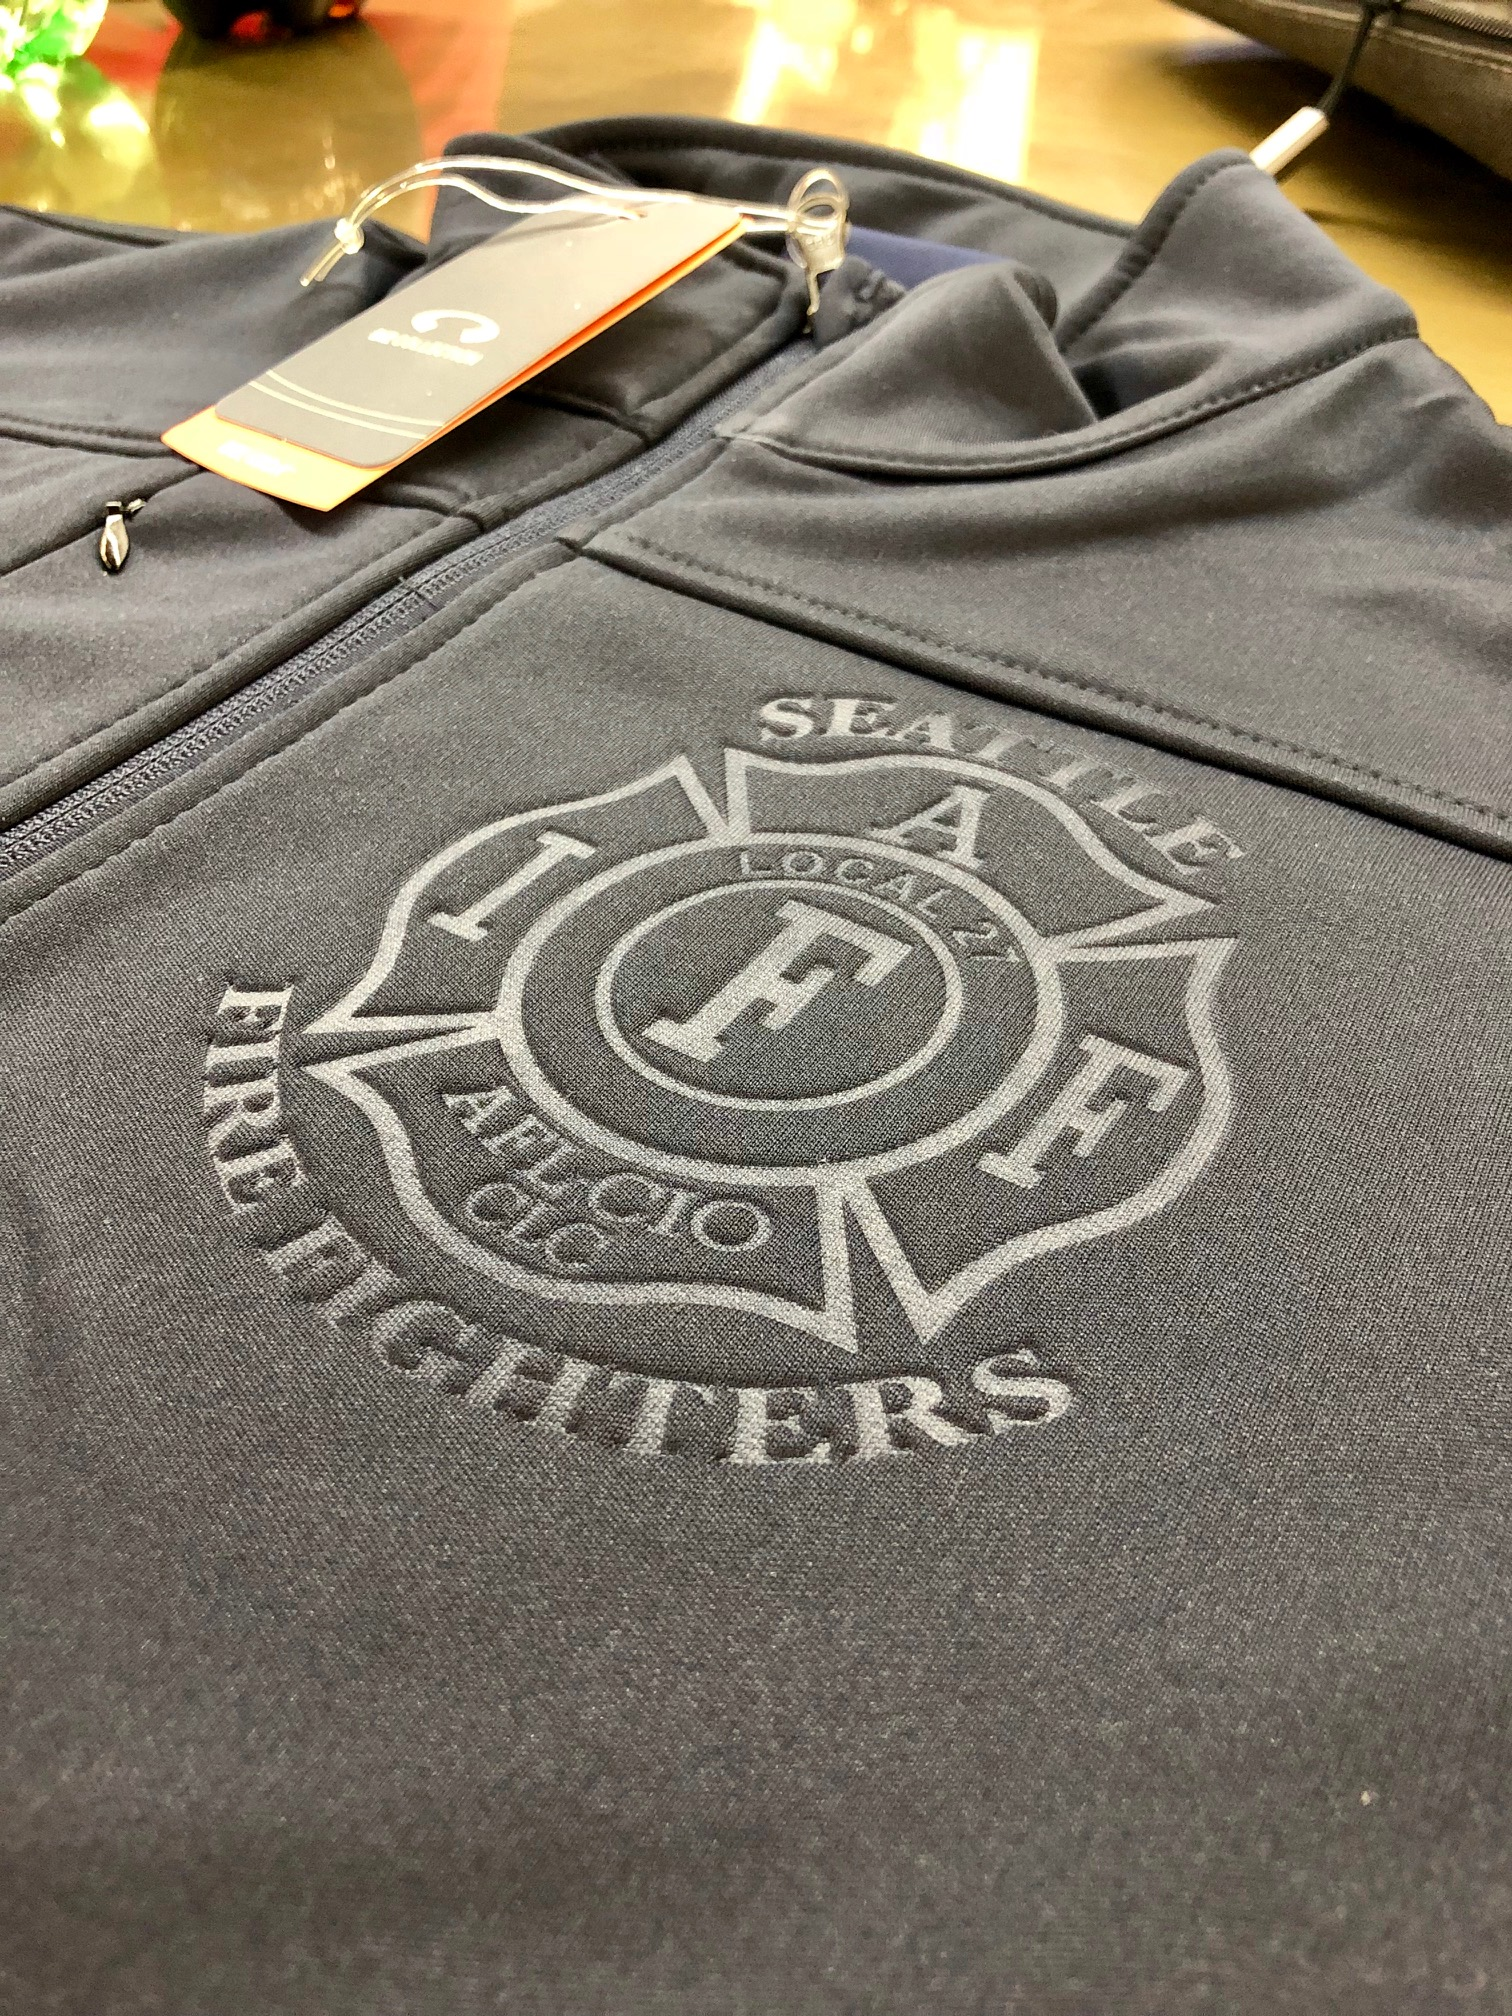 logounltd_laser_etching_embroidery_screen_printing_corporate_apparel_uniform_custom_tshirts_uniforms_dye_sublimation_kirkland_bellevue_seattle_redmond_branded_merchandise_promotional_products (5).jpg